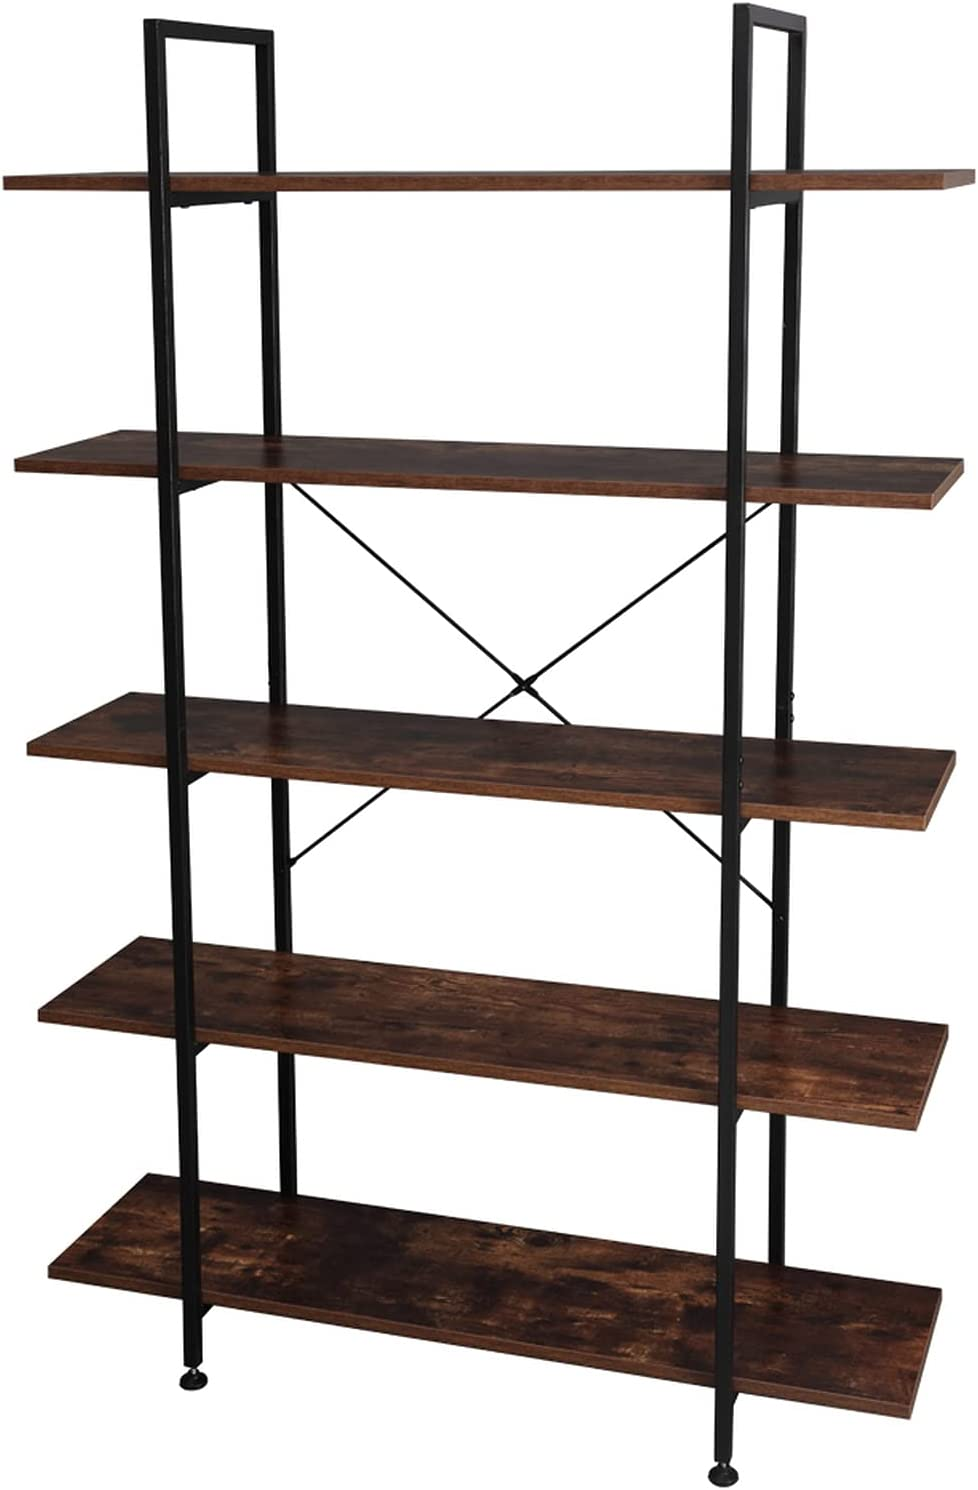 WHuiQin low-pricing Complete Free Shipping 5-Tier Bookcase and Wood Bookshelves Bookshel Metal